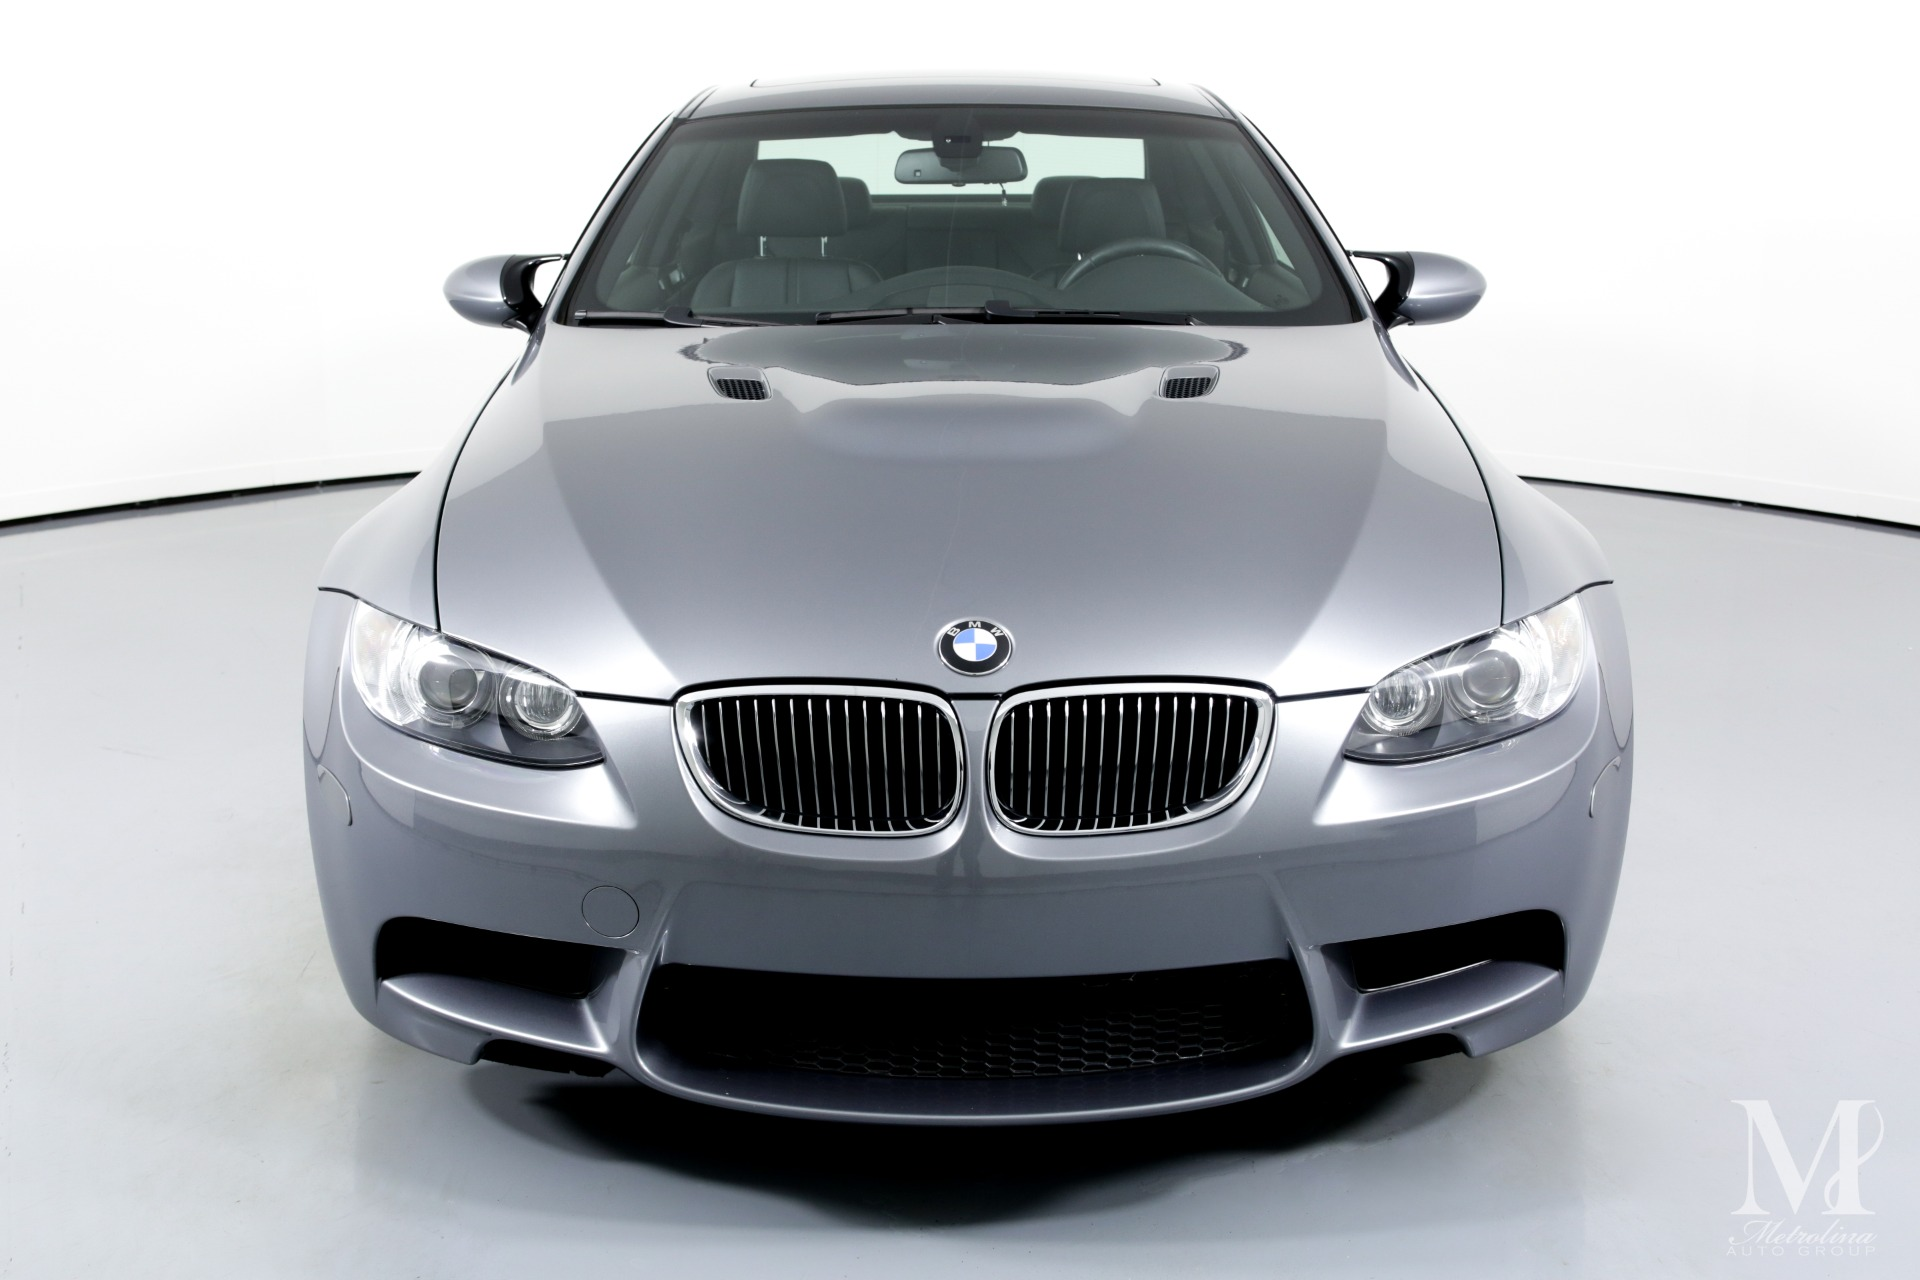 Used 2009 BMW M3 Base 2dr Coupe for sale $29,996 at Metrolina Auto Group in Charlotte NC 28217 - 3